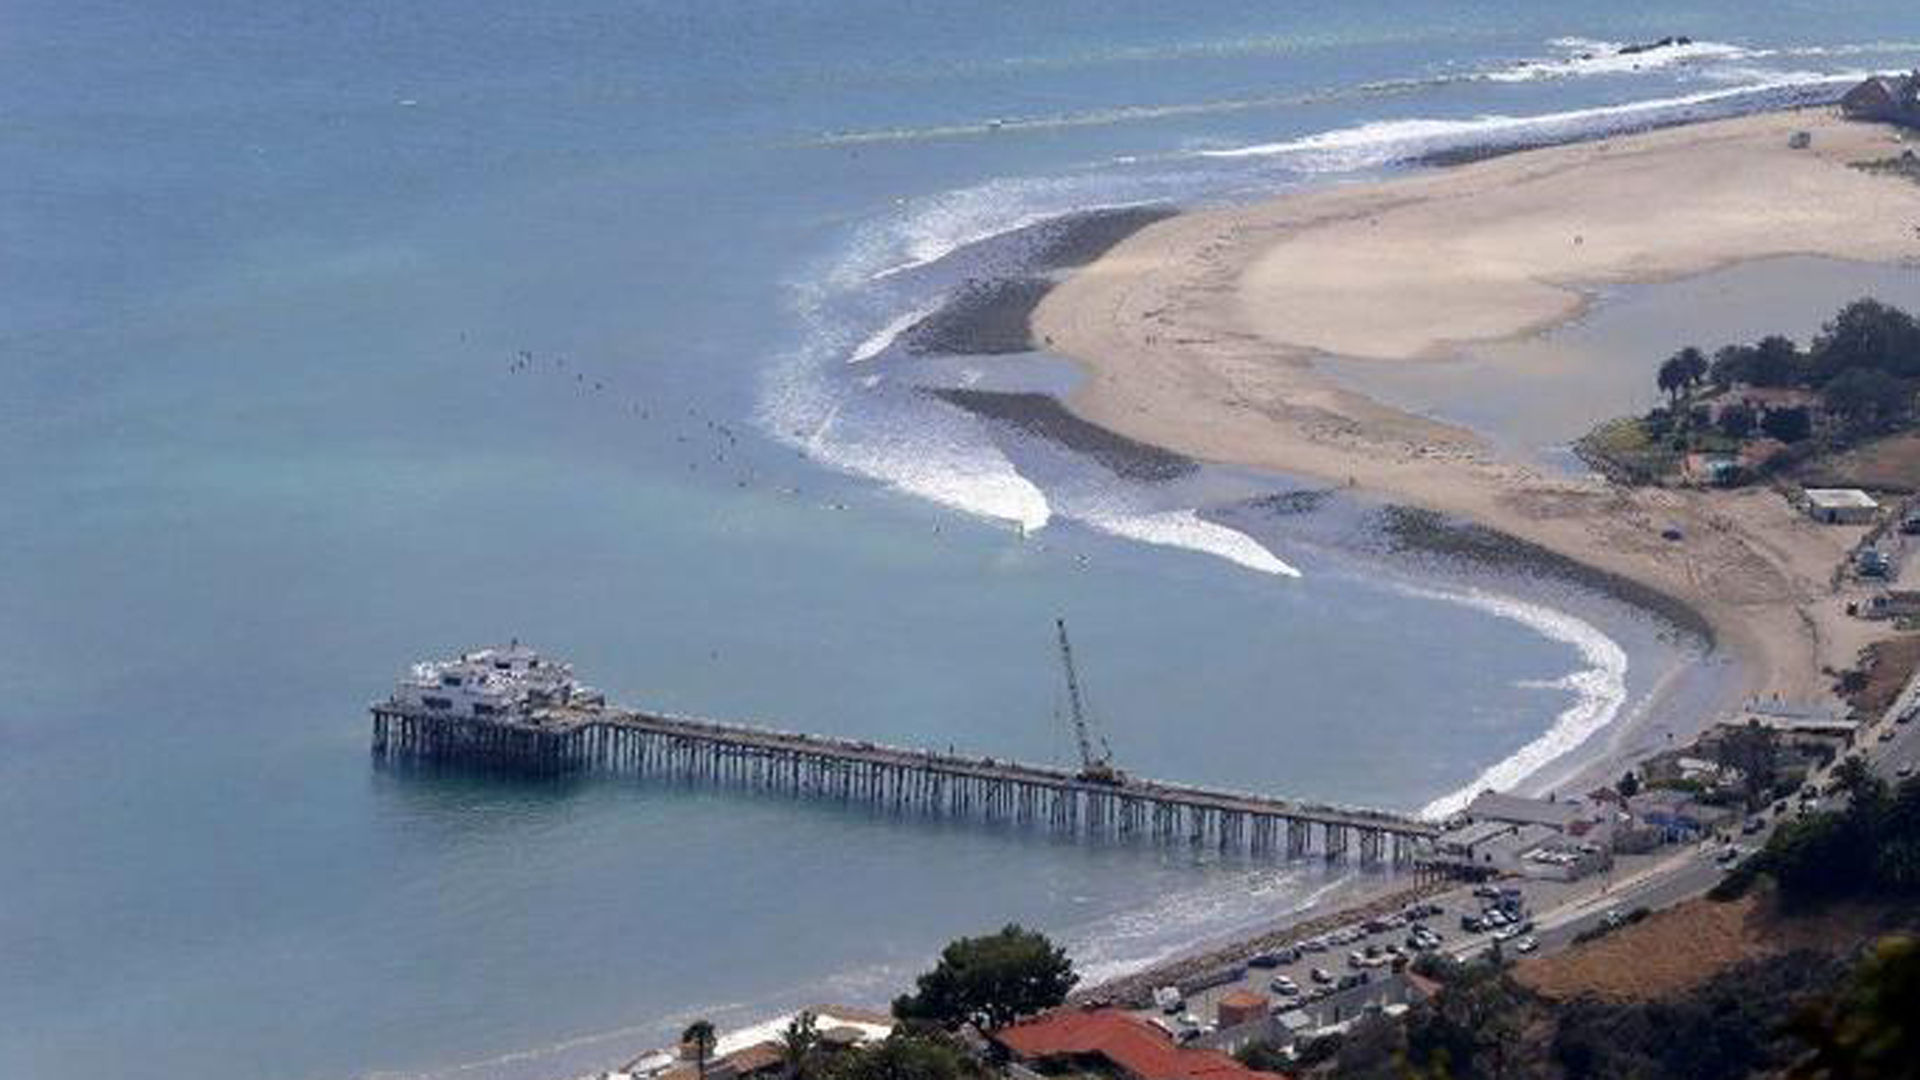 Pictured is the Malibu Pier, which is about a mile from the site where a man was found Saturday after plunging from a private chopper into the ocean. (Credit: Allen J. Schaben / Los Angeles Times)